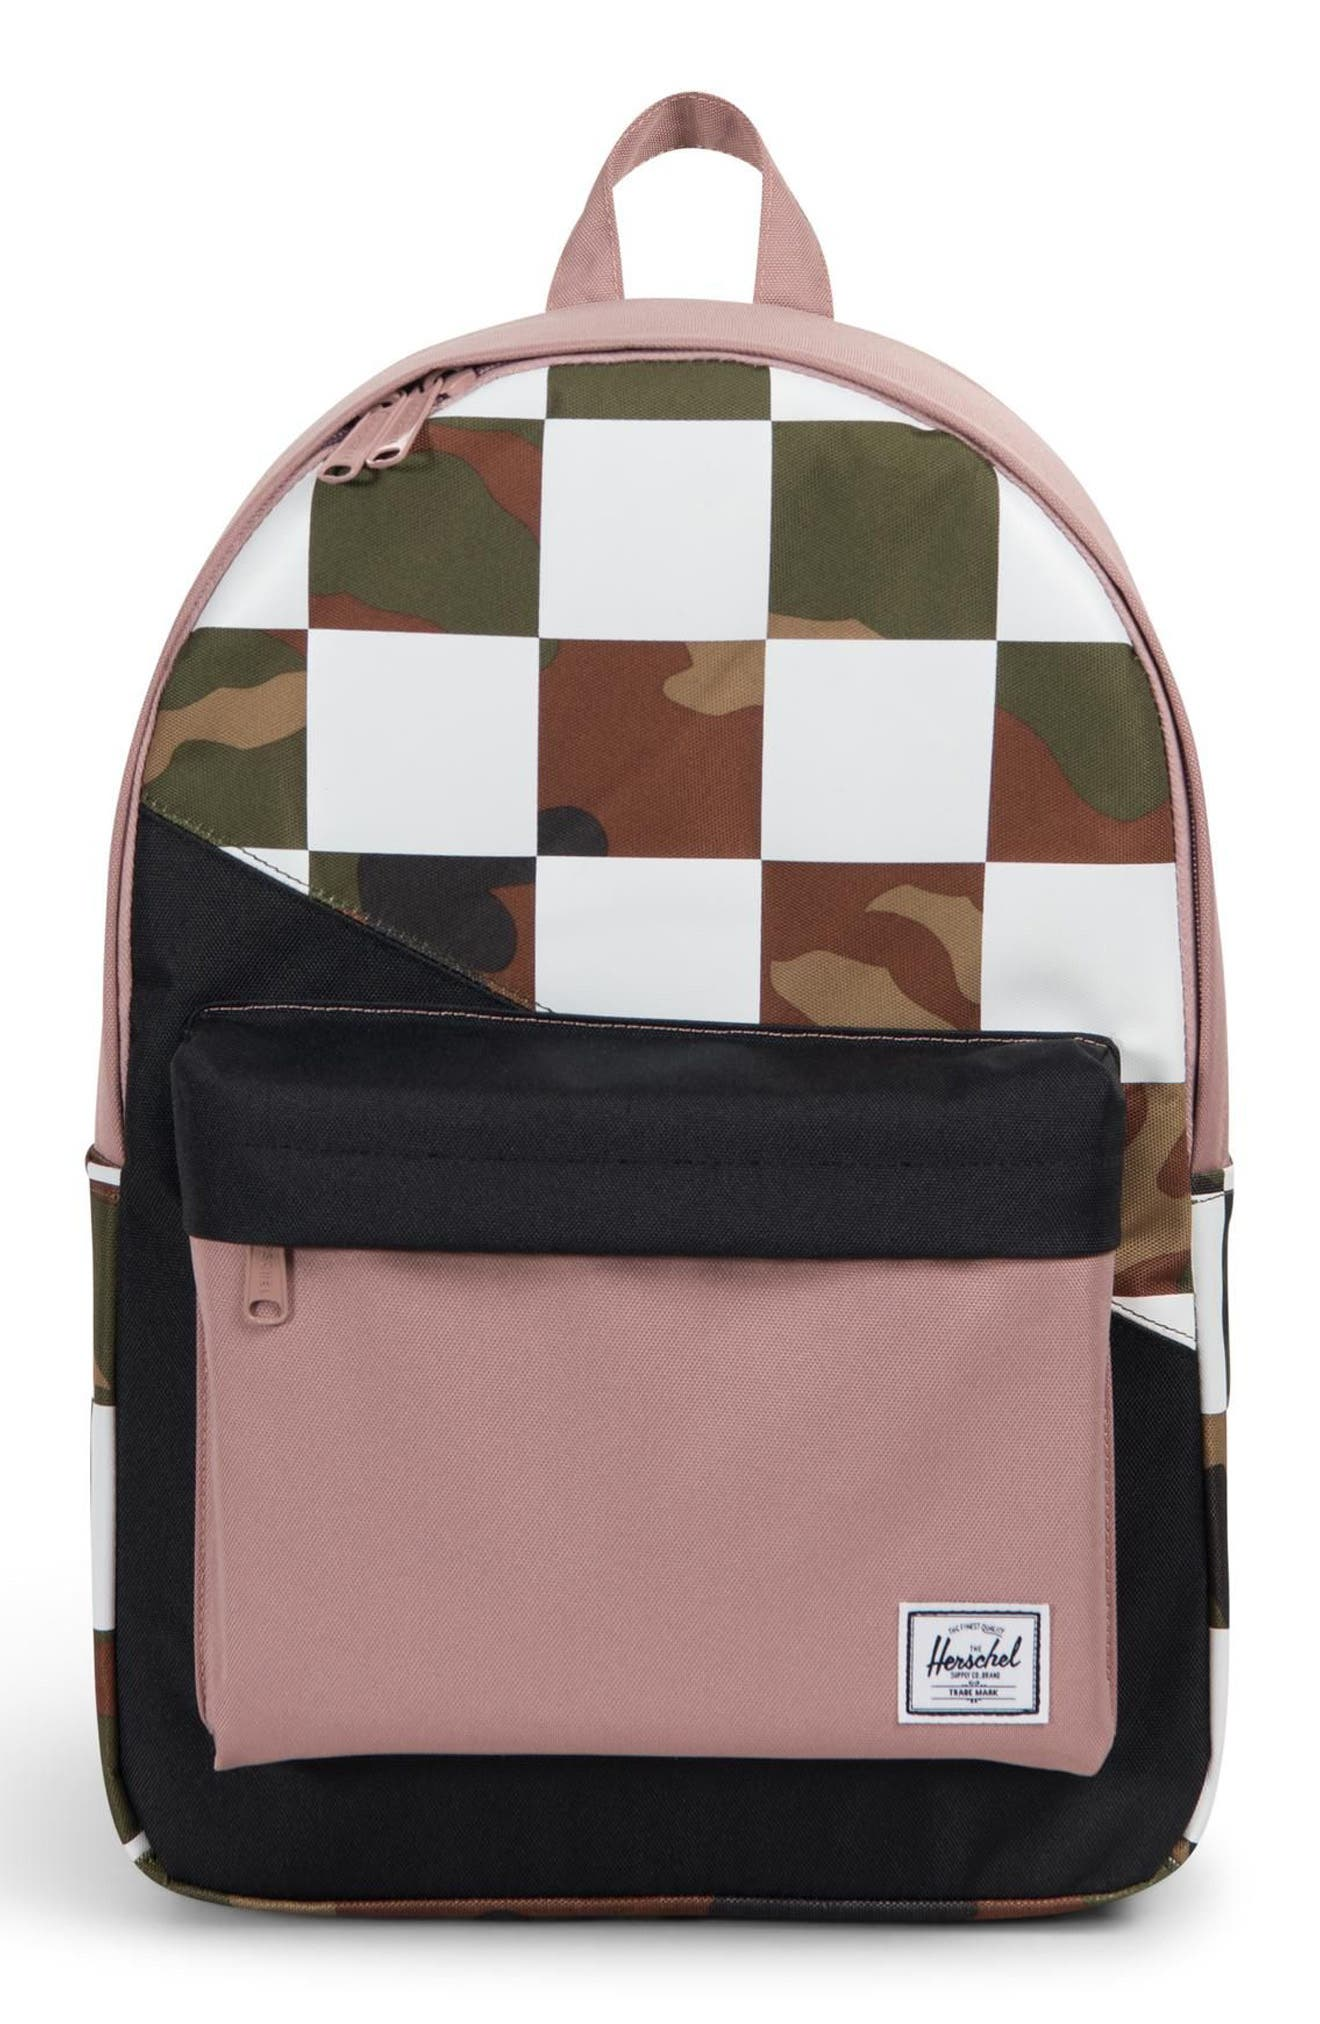 Classic Kaleidoscope Backpack,                         Main,                         color, WOODLAND/ ASH ROSE/ CHECKER